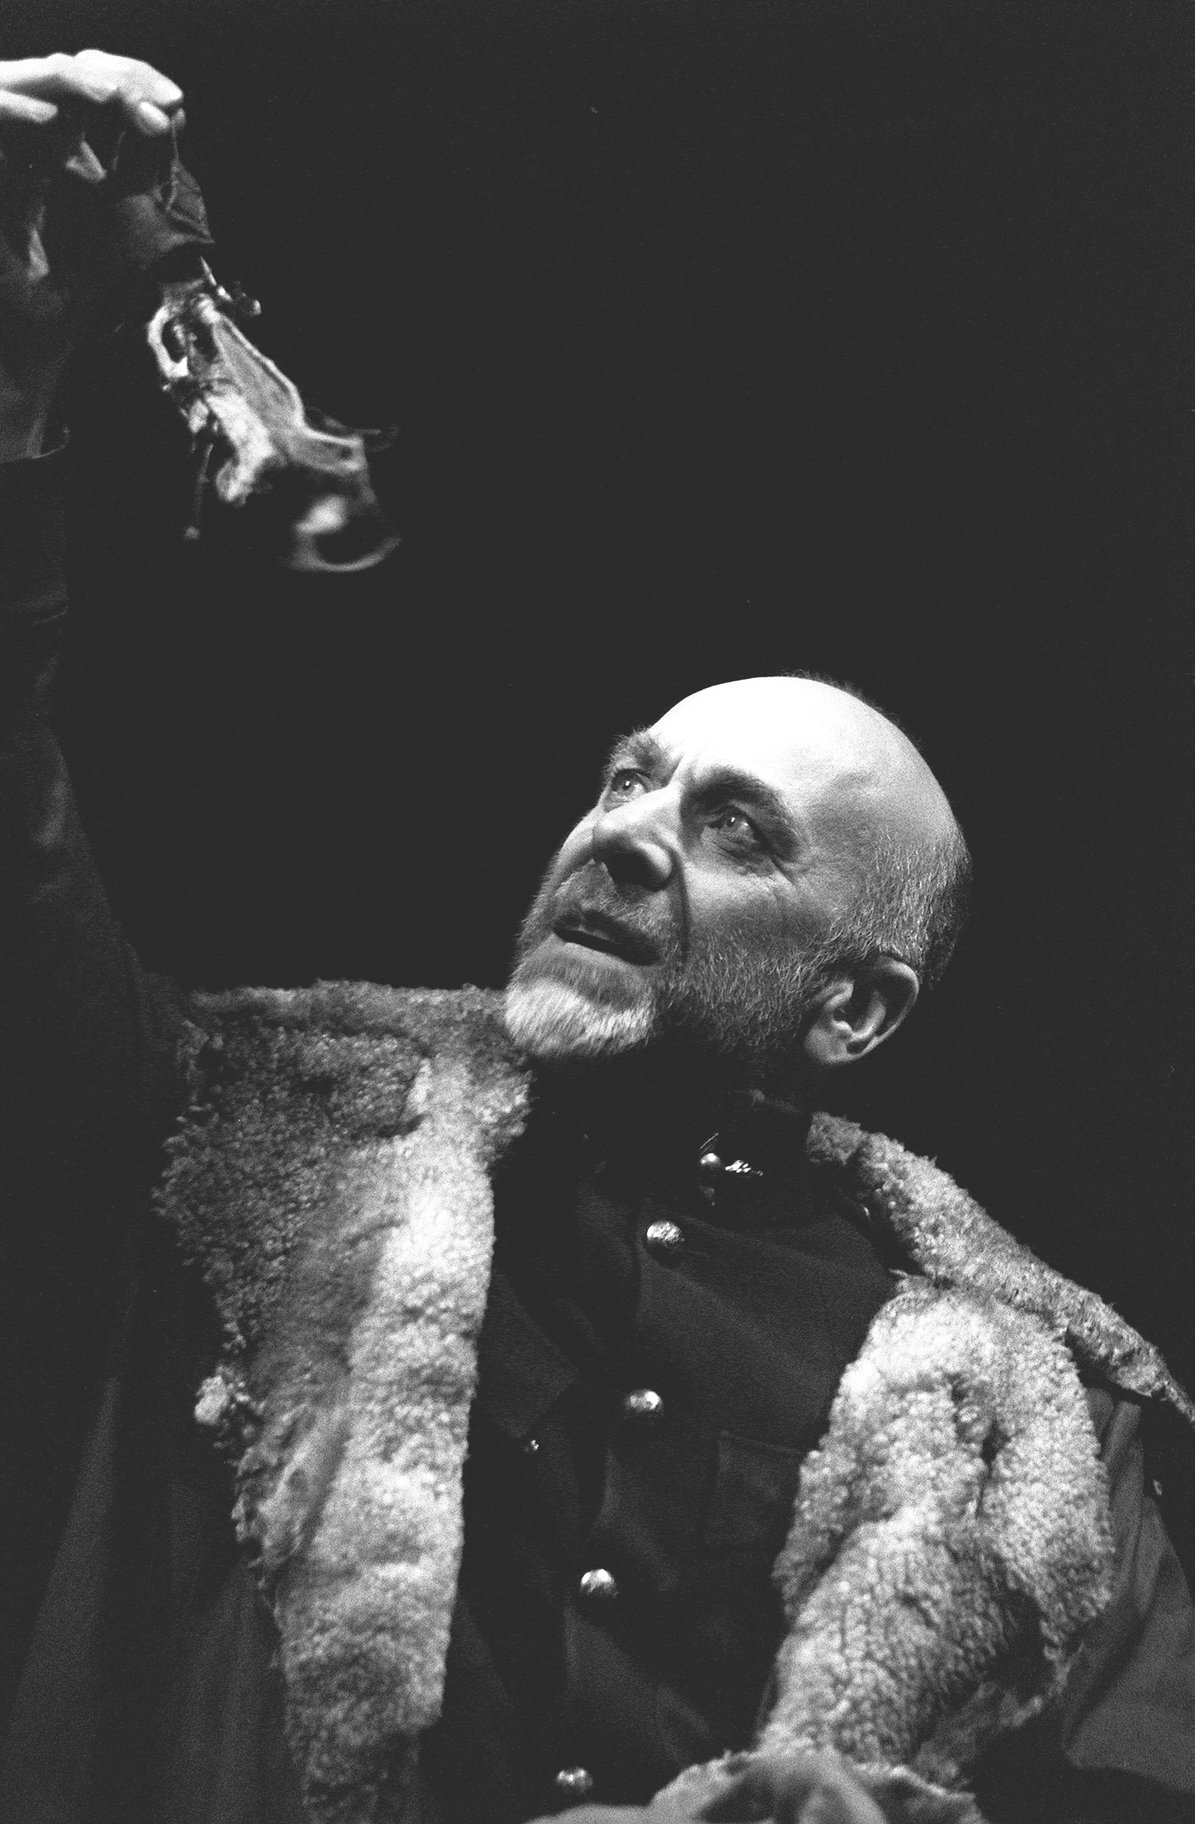 Banquo in a fur-lined coat.